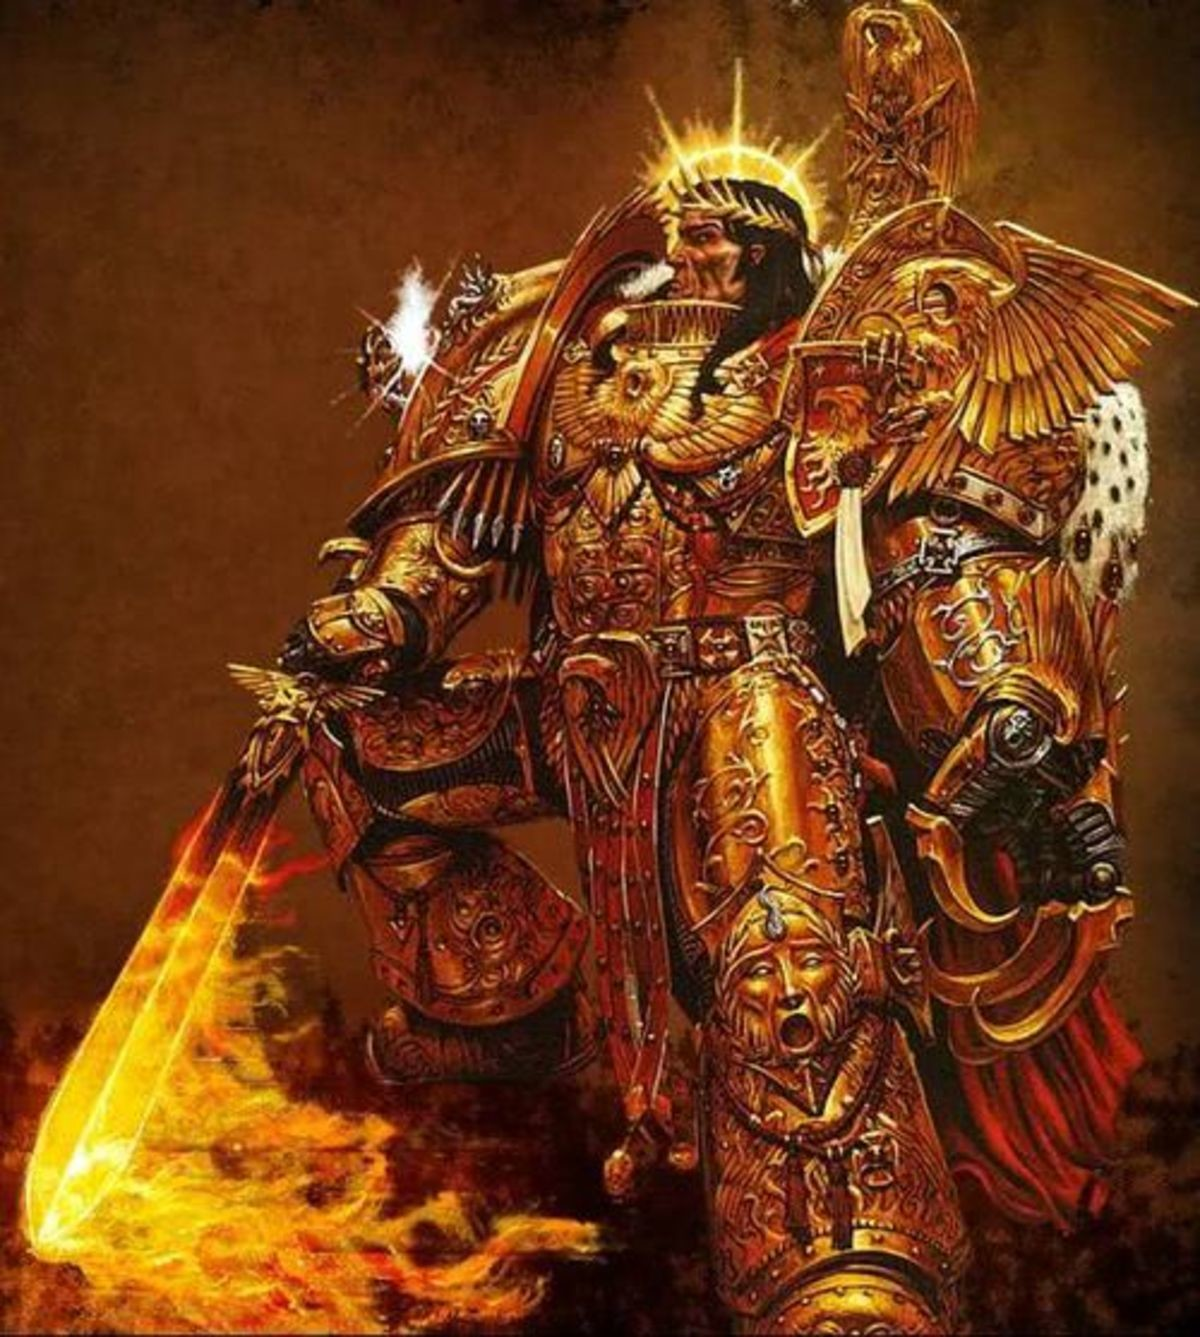 help.. so i know this guy is the emperor but how is this game actually played? ive seen thousands of stories and fan arts but no posts on the actual rules or ev